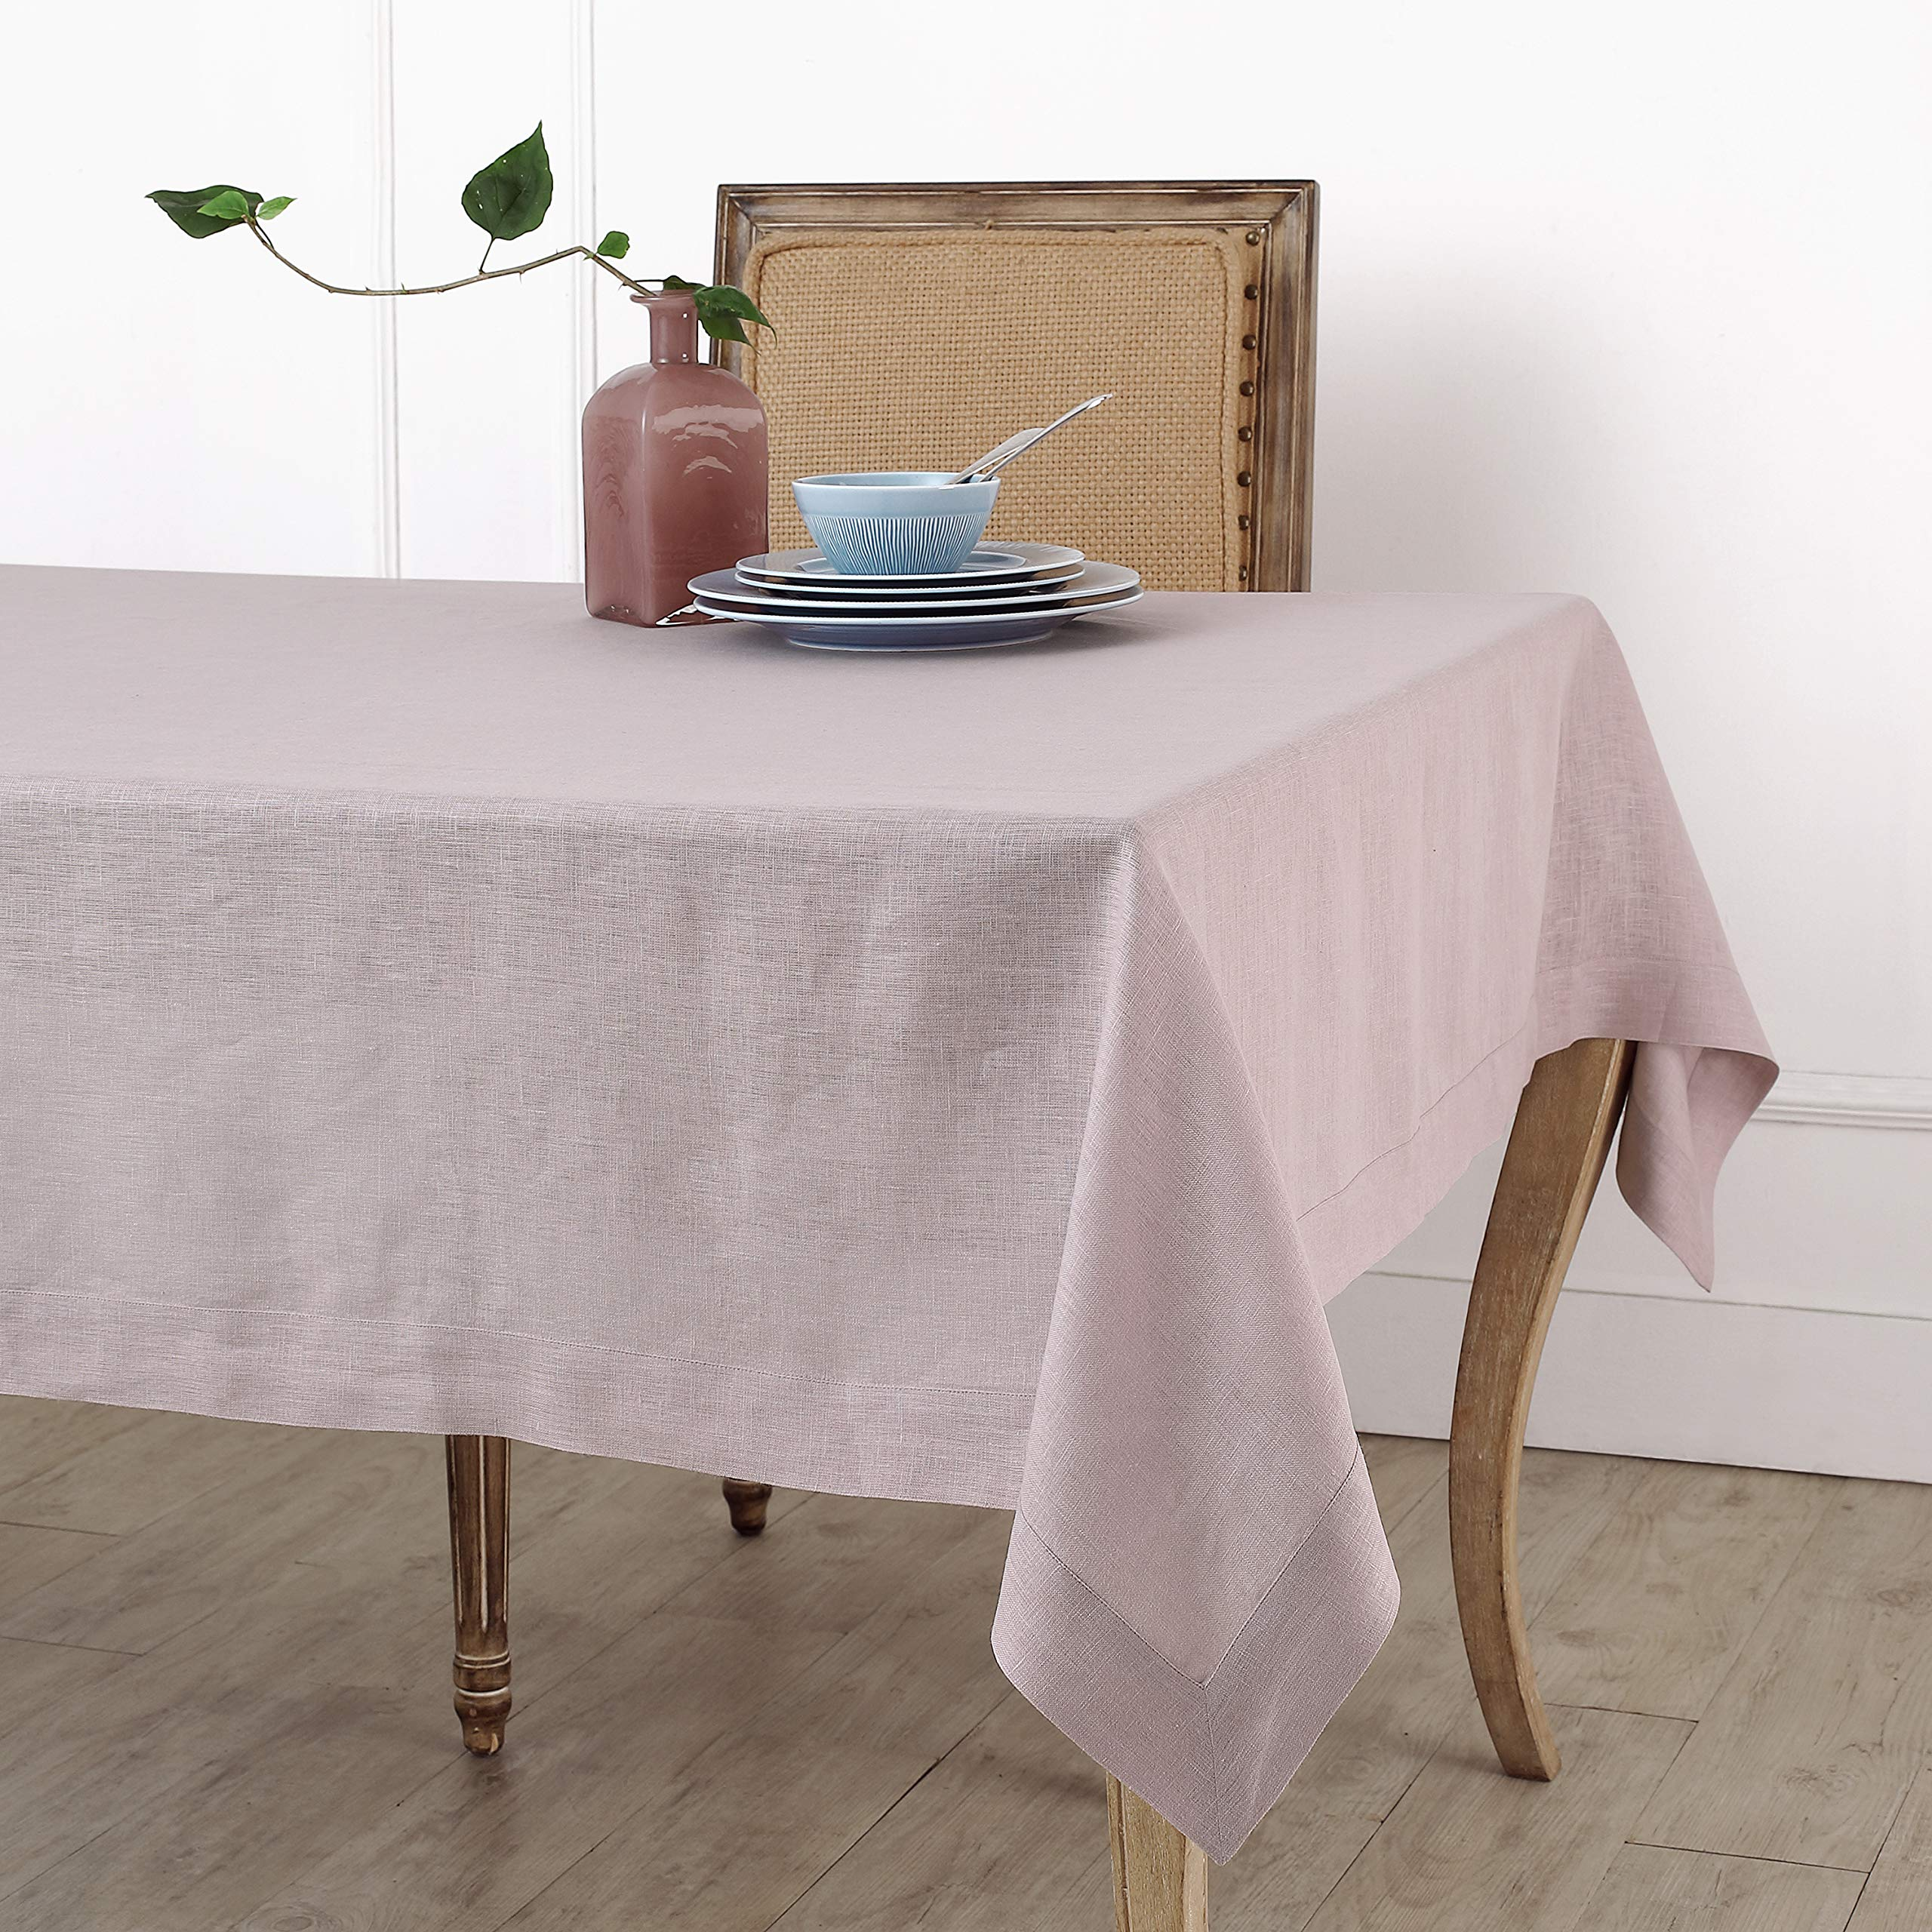 Solino Home 100% Linen Tablecloth - 60 x 120 Inch Lilac, Natural Fabric, European Flax - Athena Rectangular Tablecloth for Indoor and Outdoor use